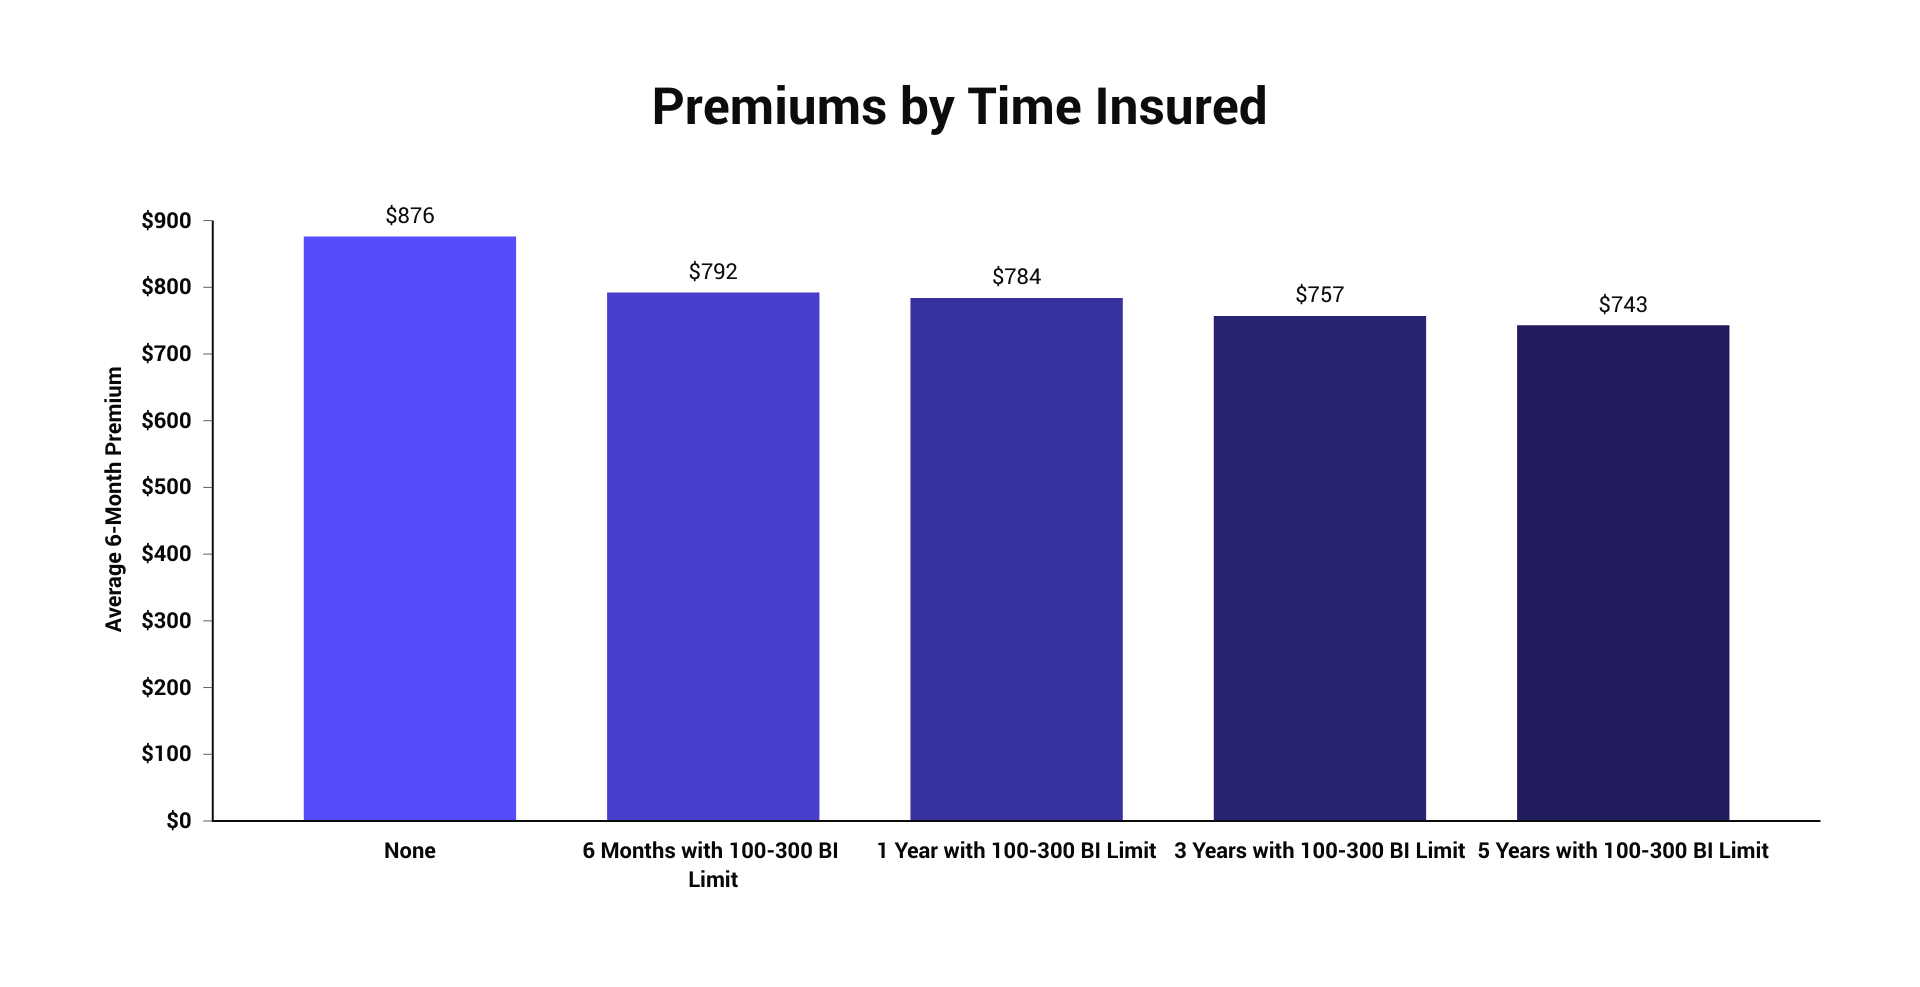 timeinsured_avgpremiums.png